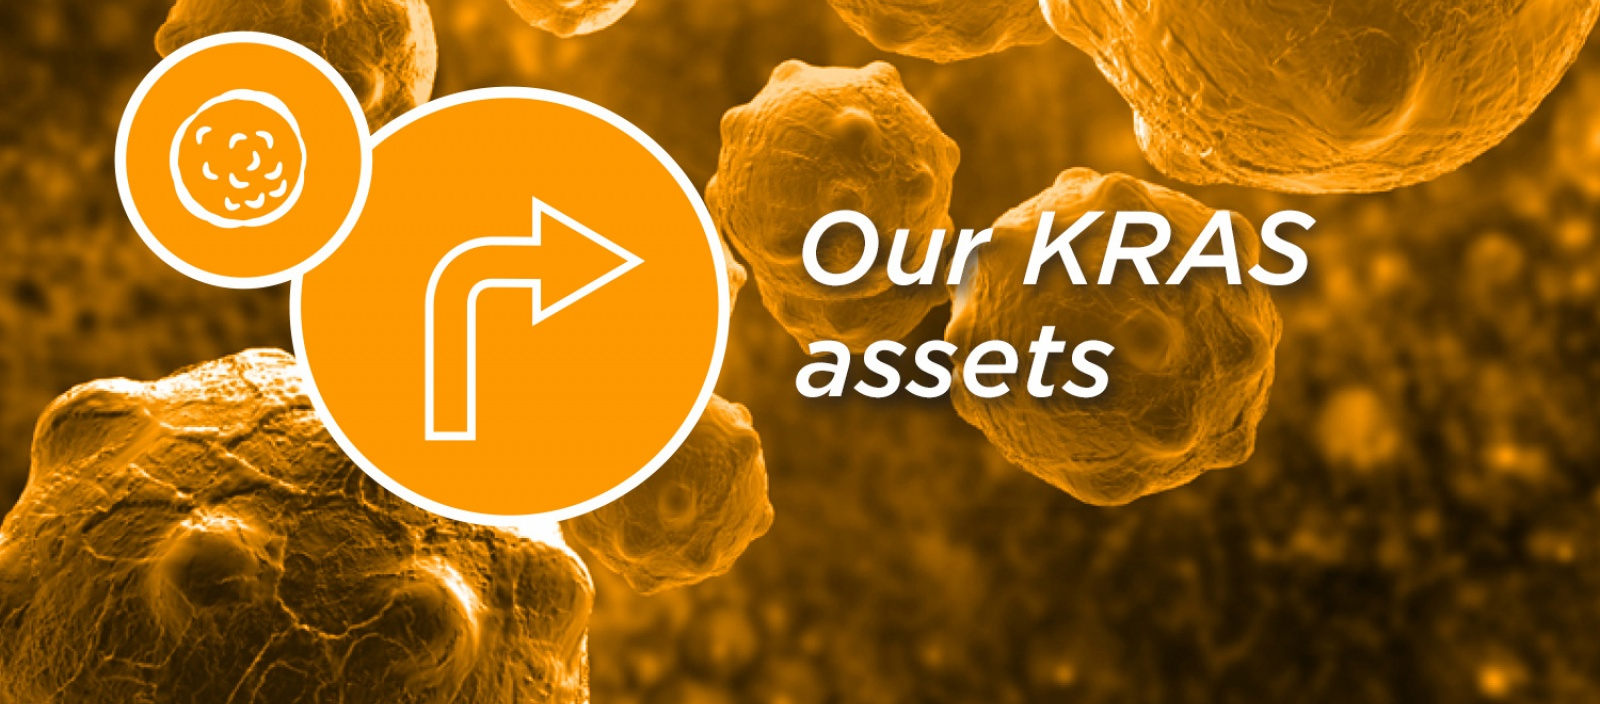 Our KRAS assets